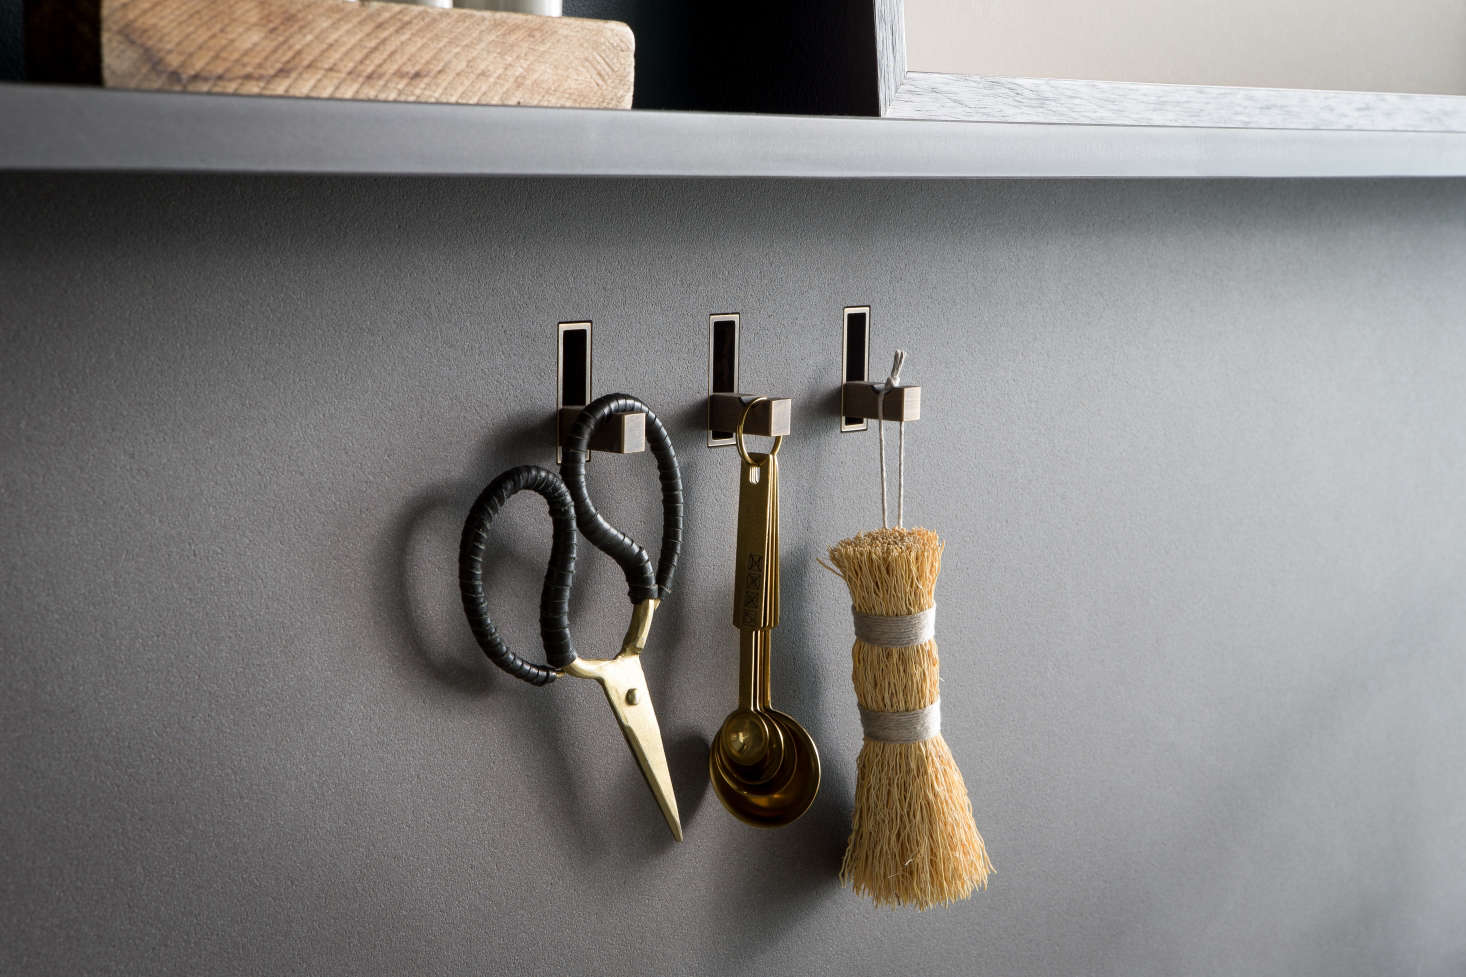 The hooks are integrated into the backsplash and can be finished to match any surface, so that when not in use, they disappear. For sink accessories, browse our Brushes & Sponges finds.